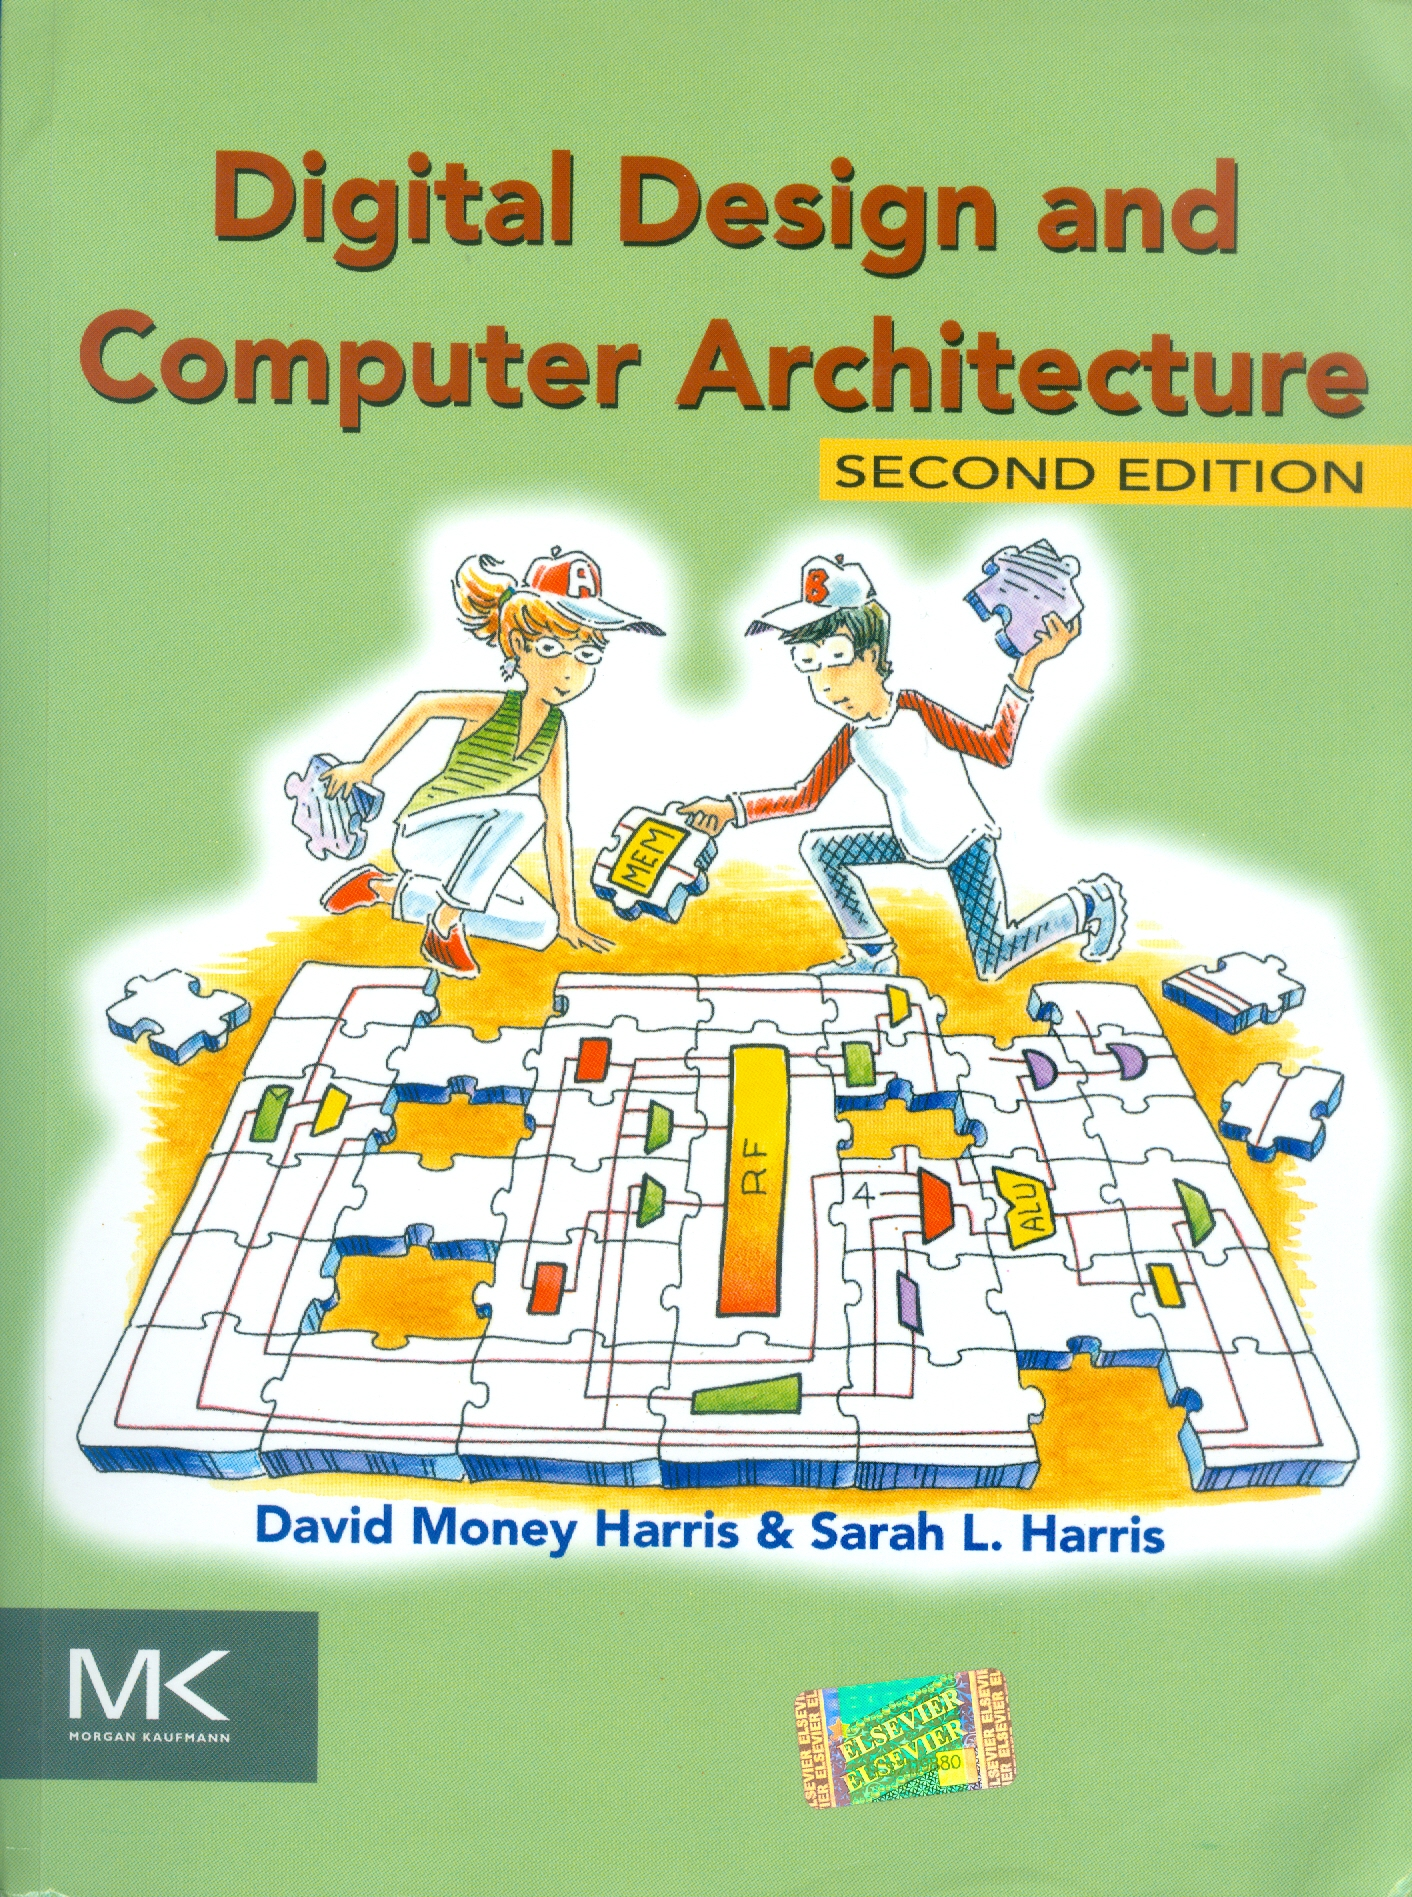 digital design and computer architecture0001.jpg